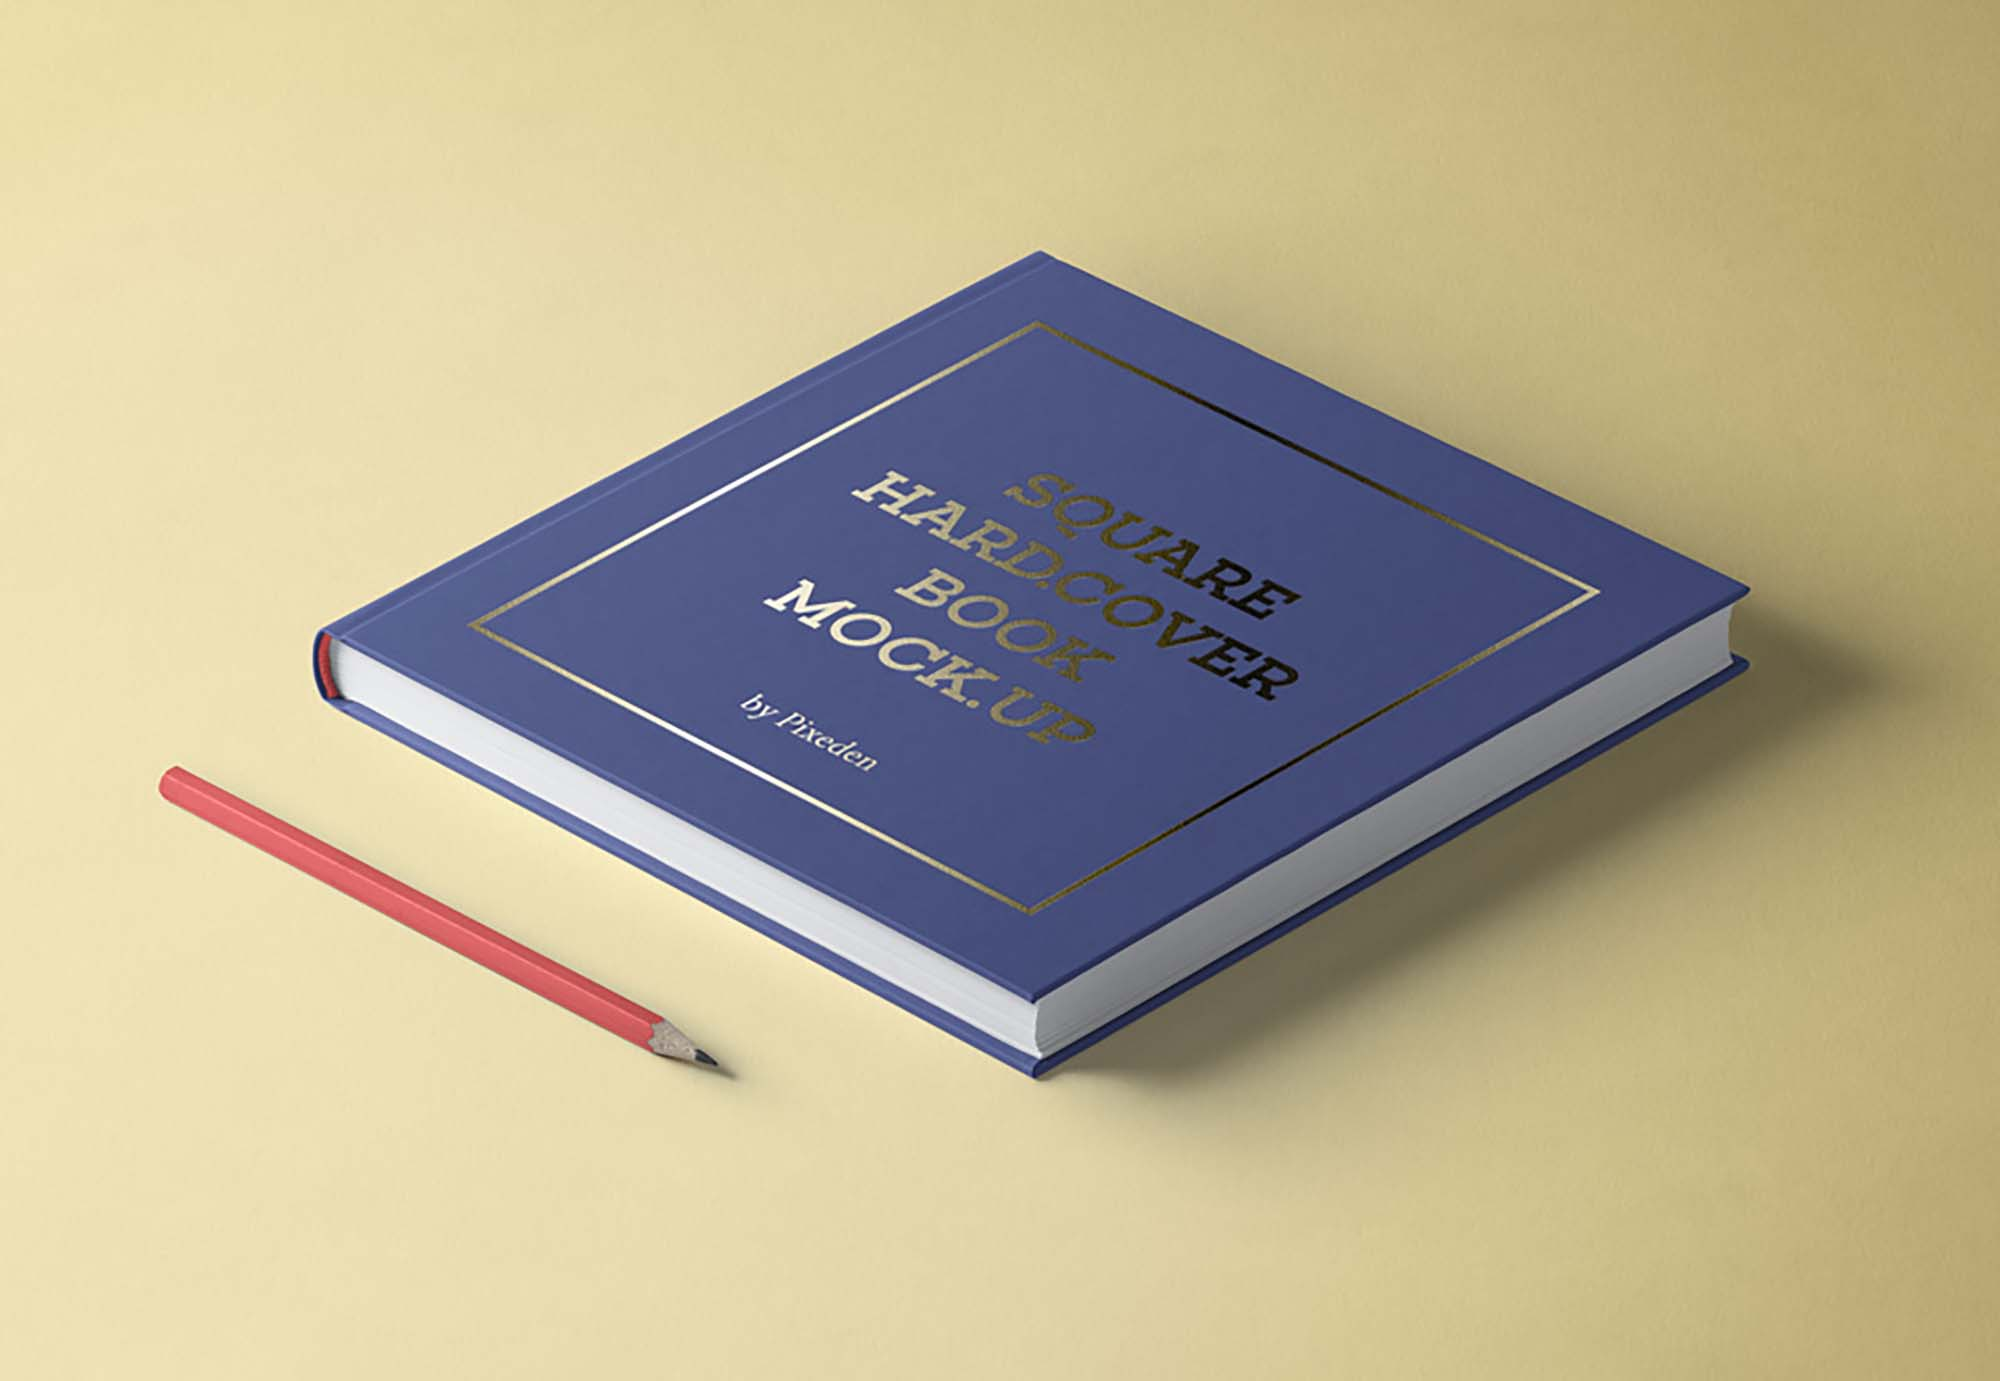 Isometric Square Hardcover Book Mockup